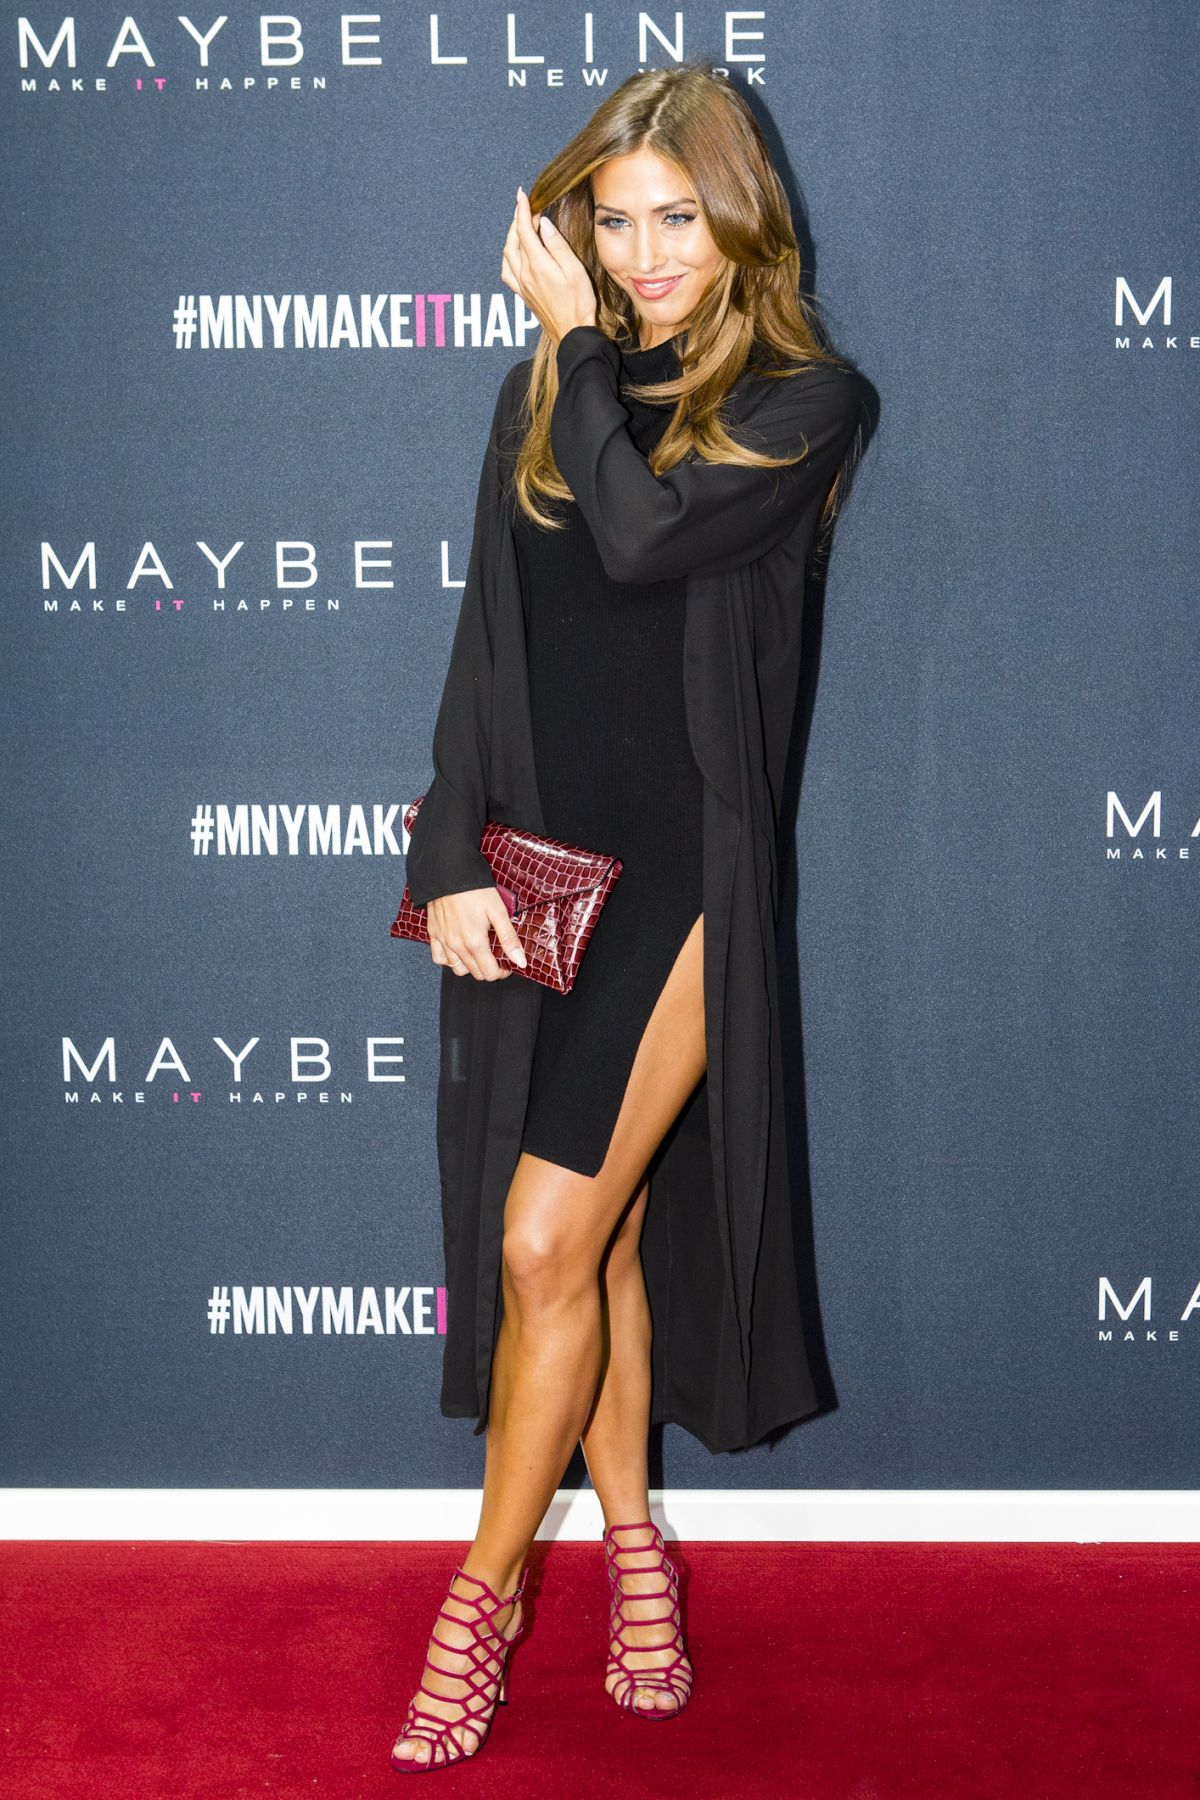 ANN KATHRIN BROMMEL at The Power of Colors – Maybelline New York Make-up Runaway